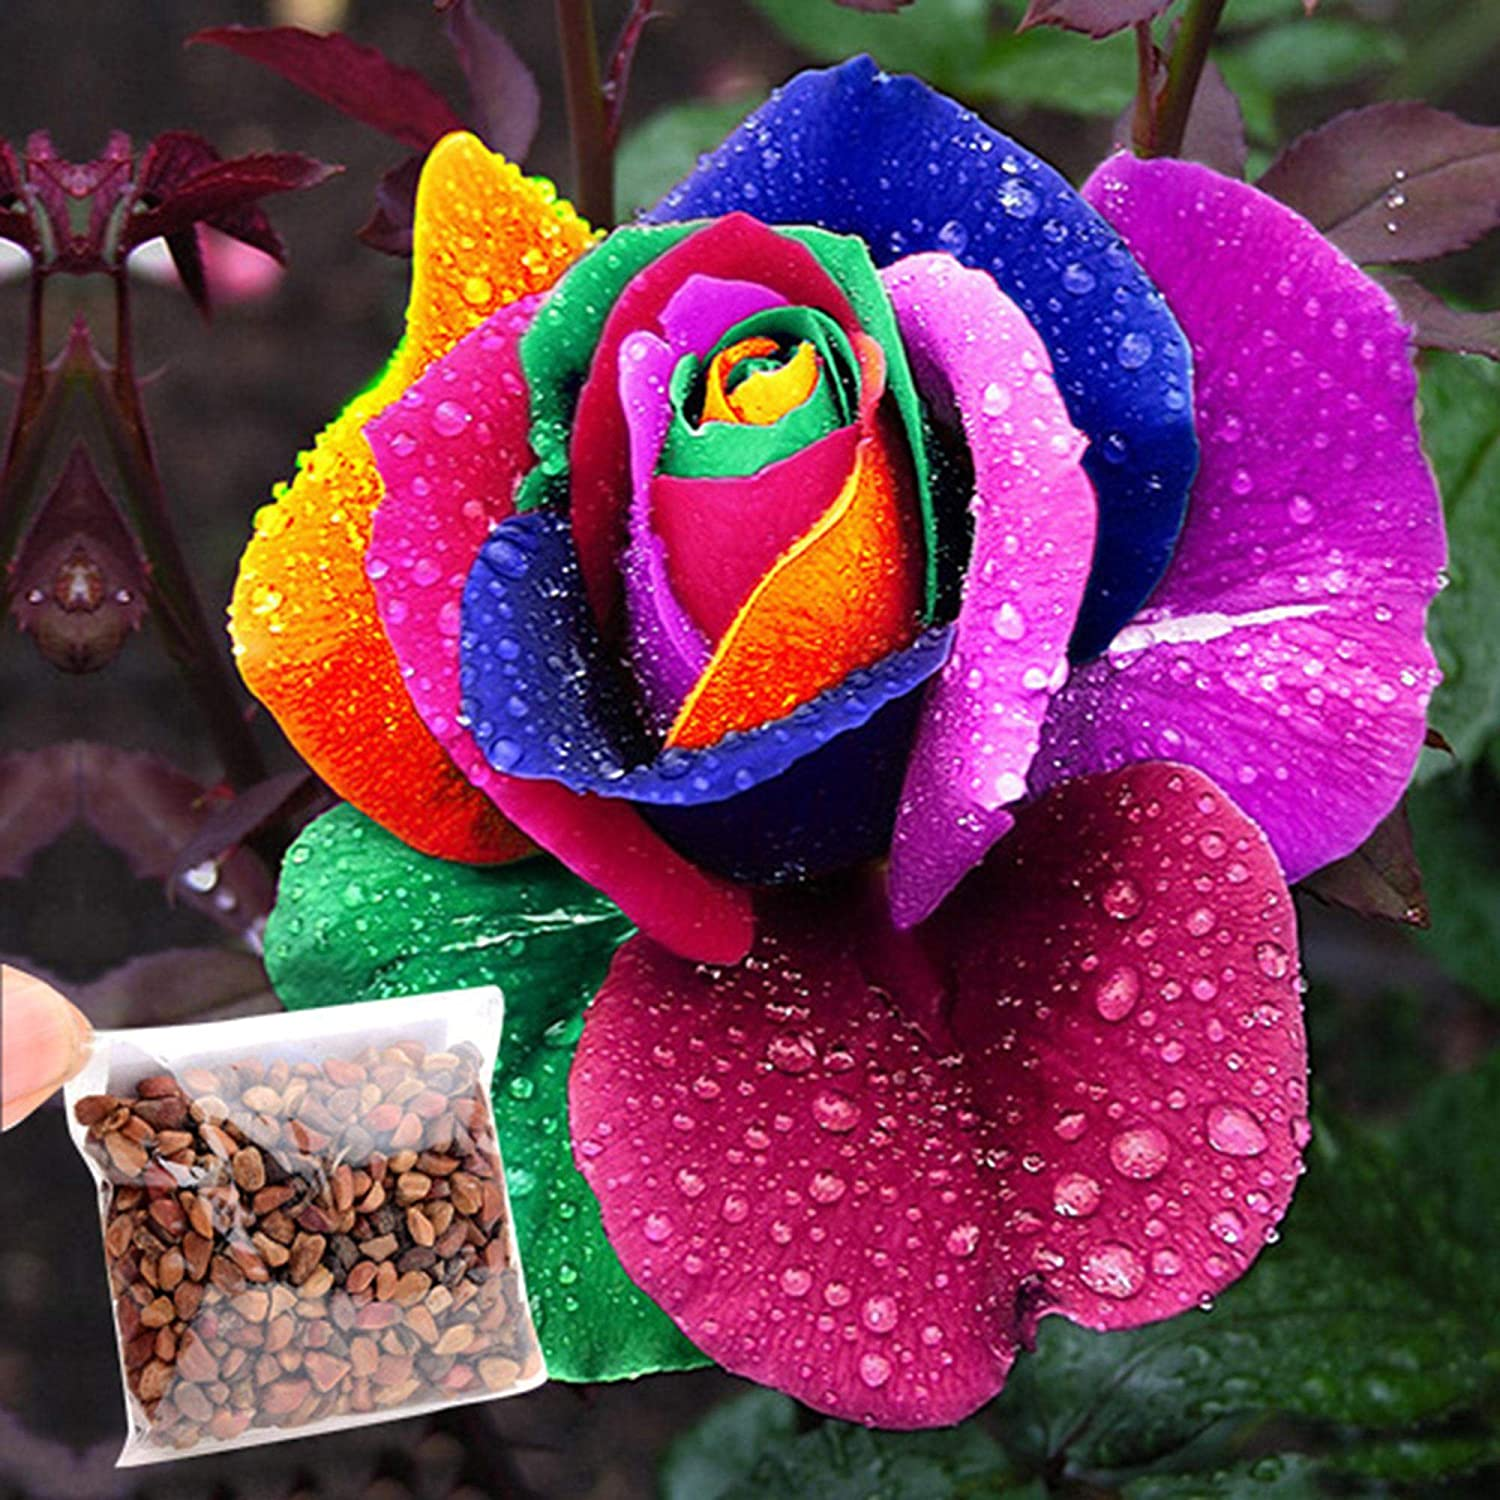 Cravog Pack Of 500 Rose Seeds For Beautiful Rainbow Coloured